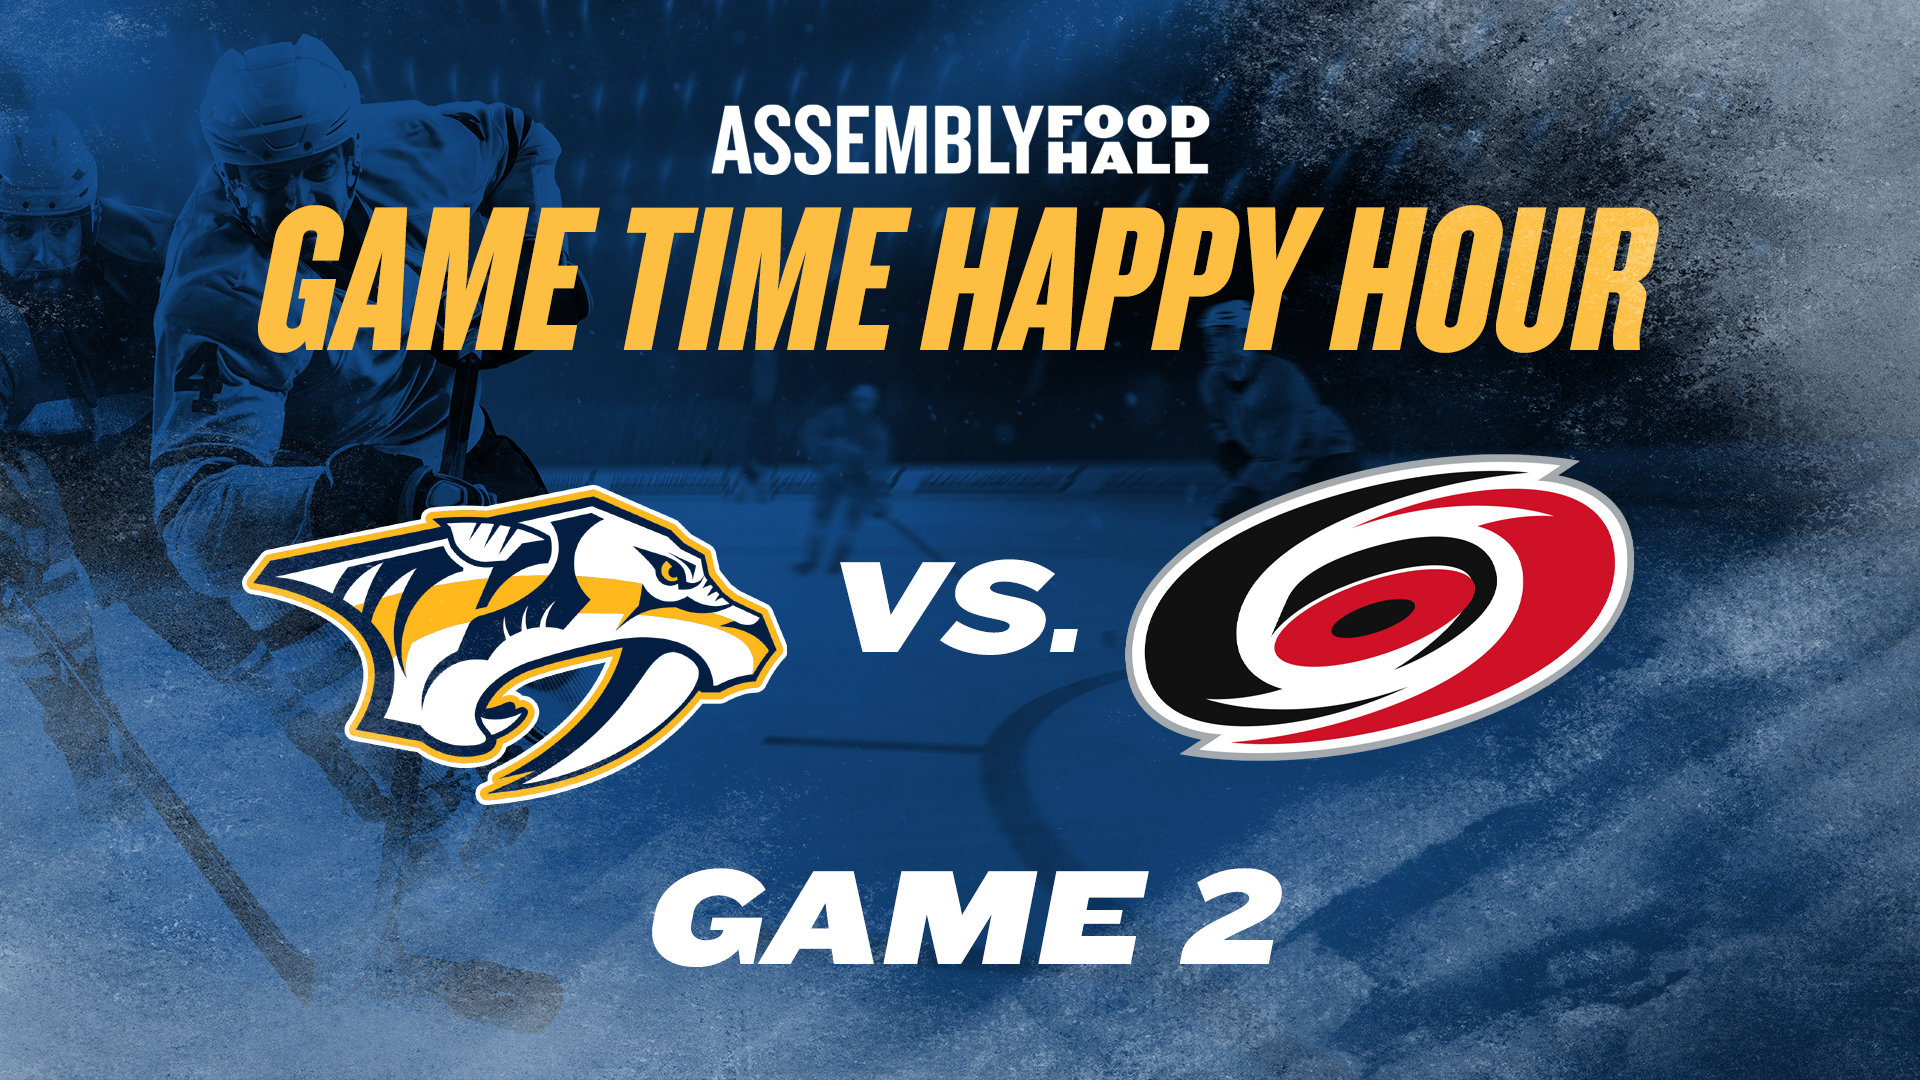 Promo image of Predators v. Hurricanes Game Time Happy Hour | Game 2